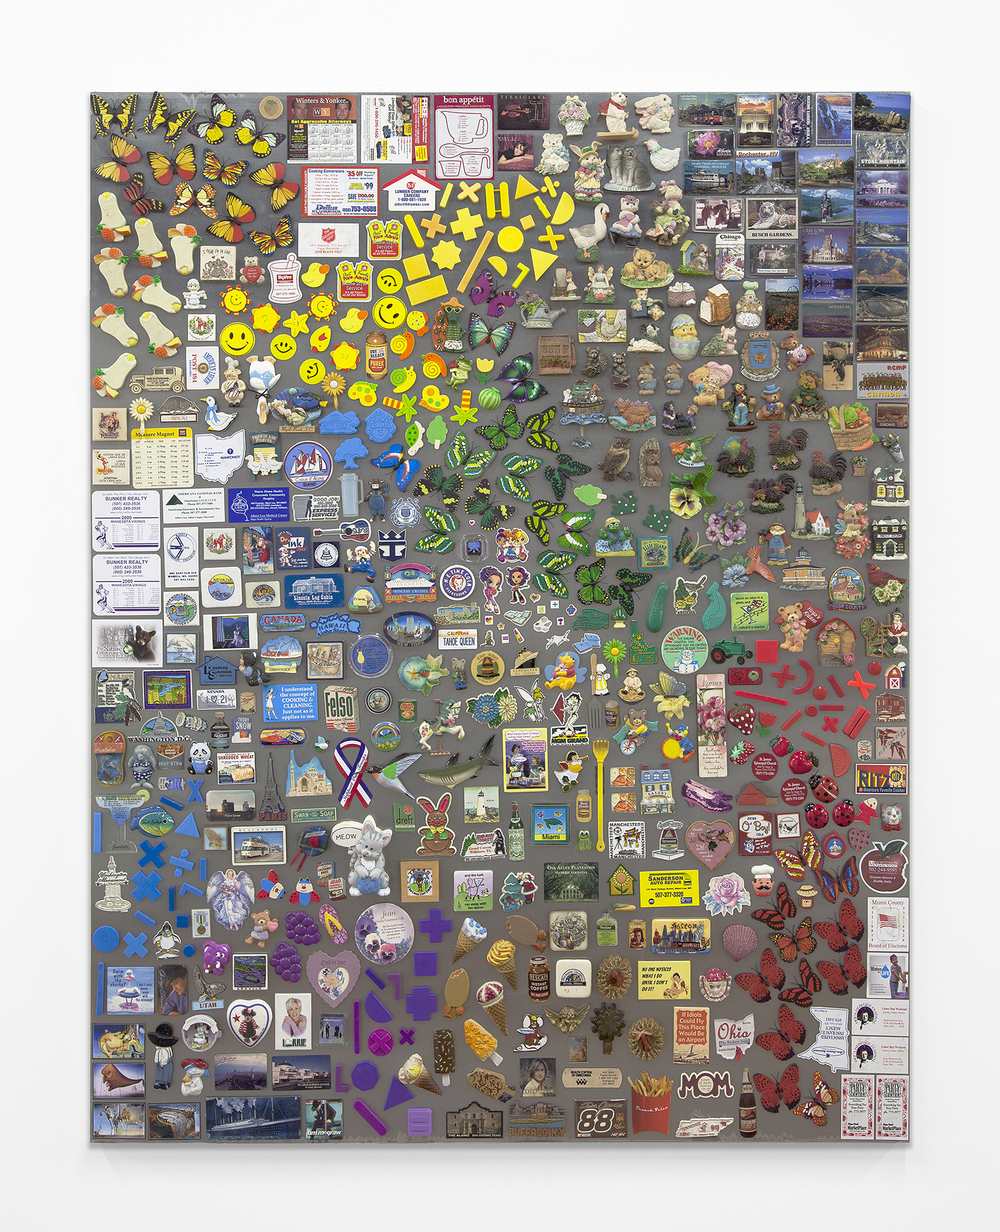 Muff, 2013 Magnets on steel 60 x 48 inches